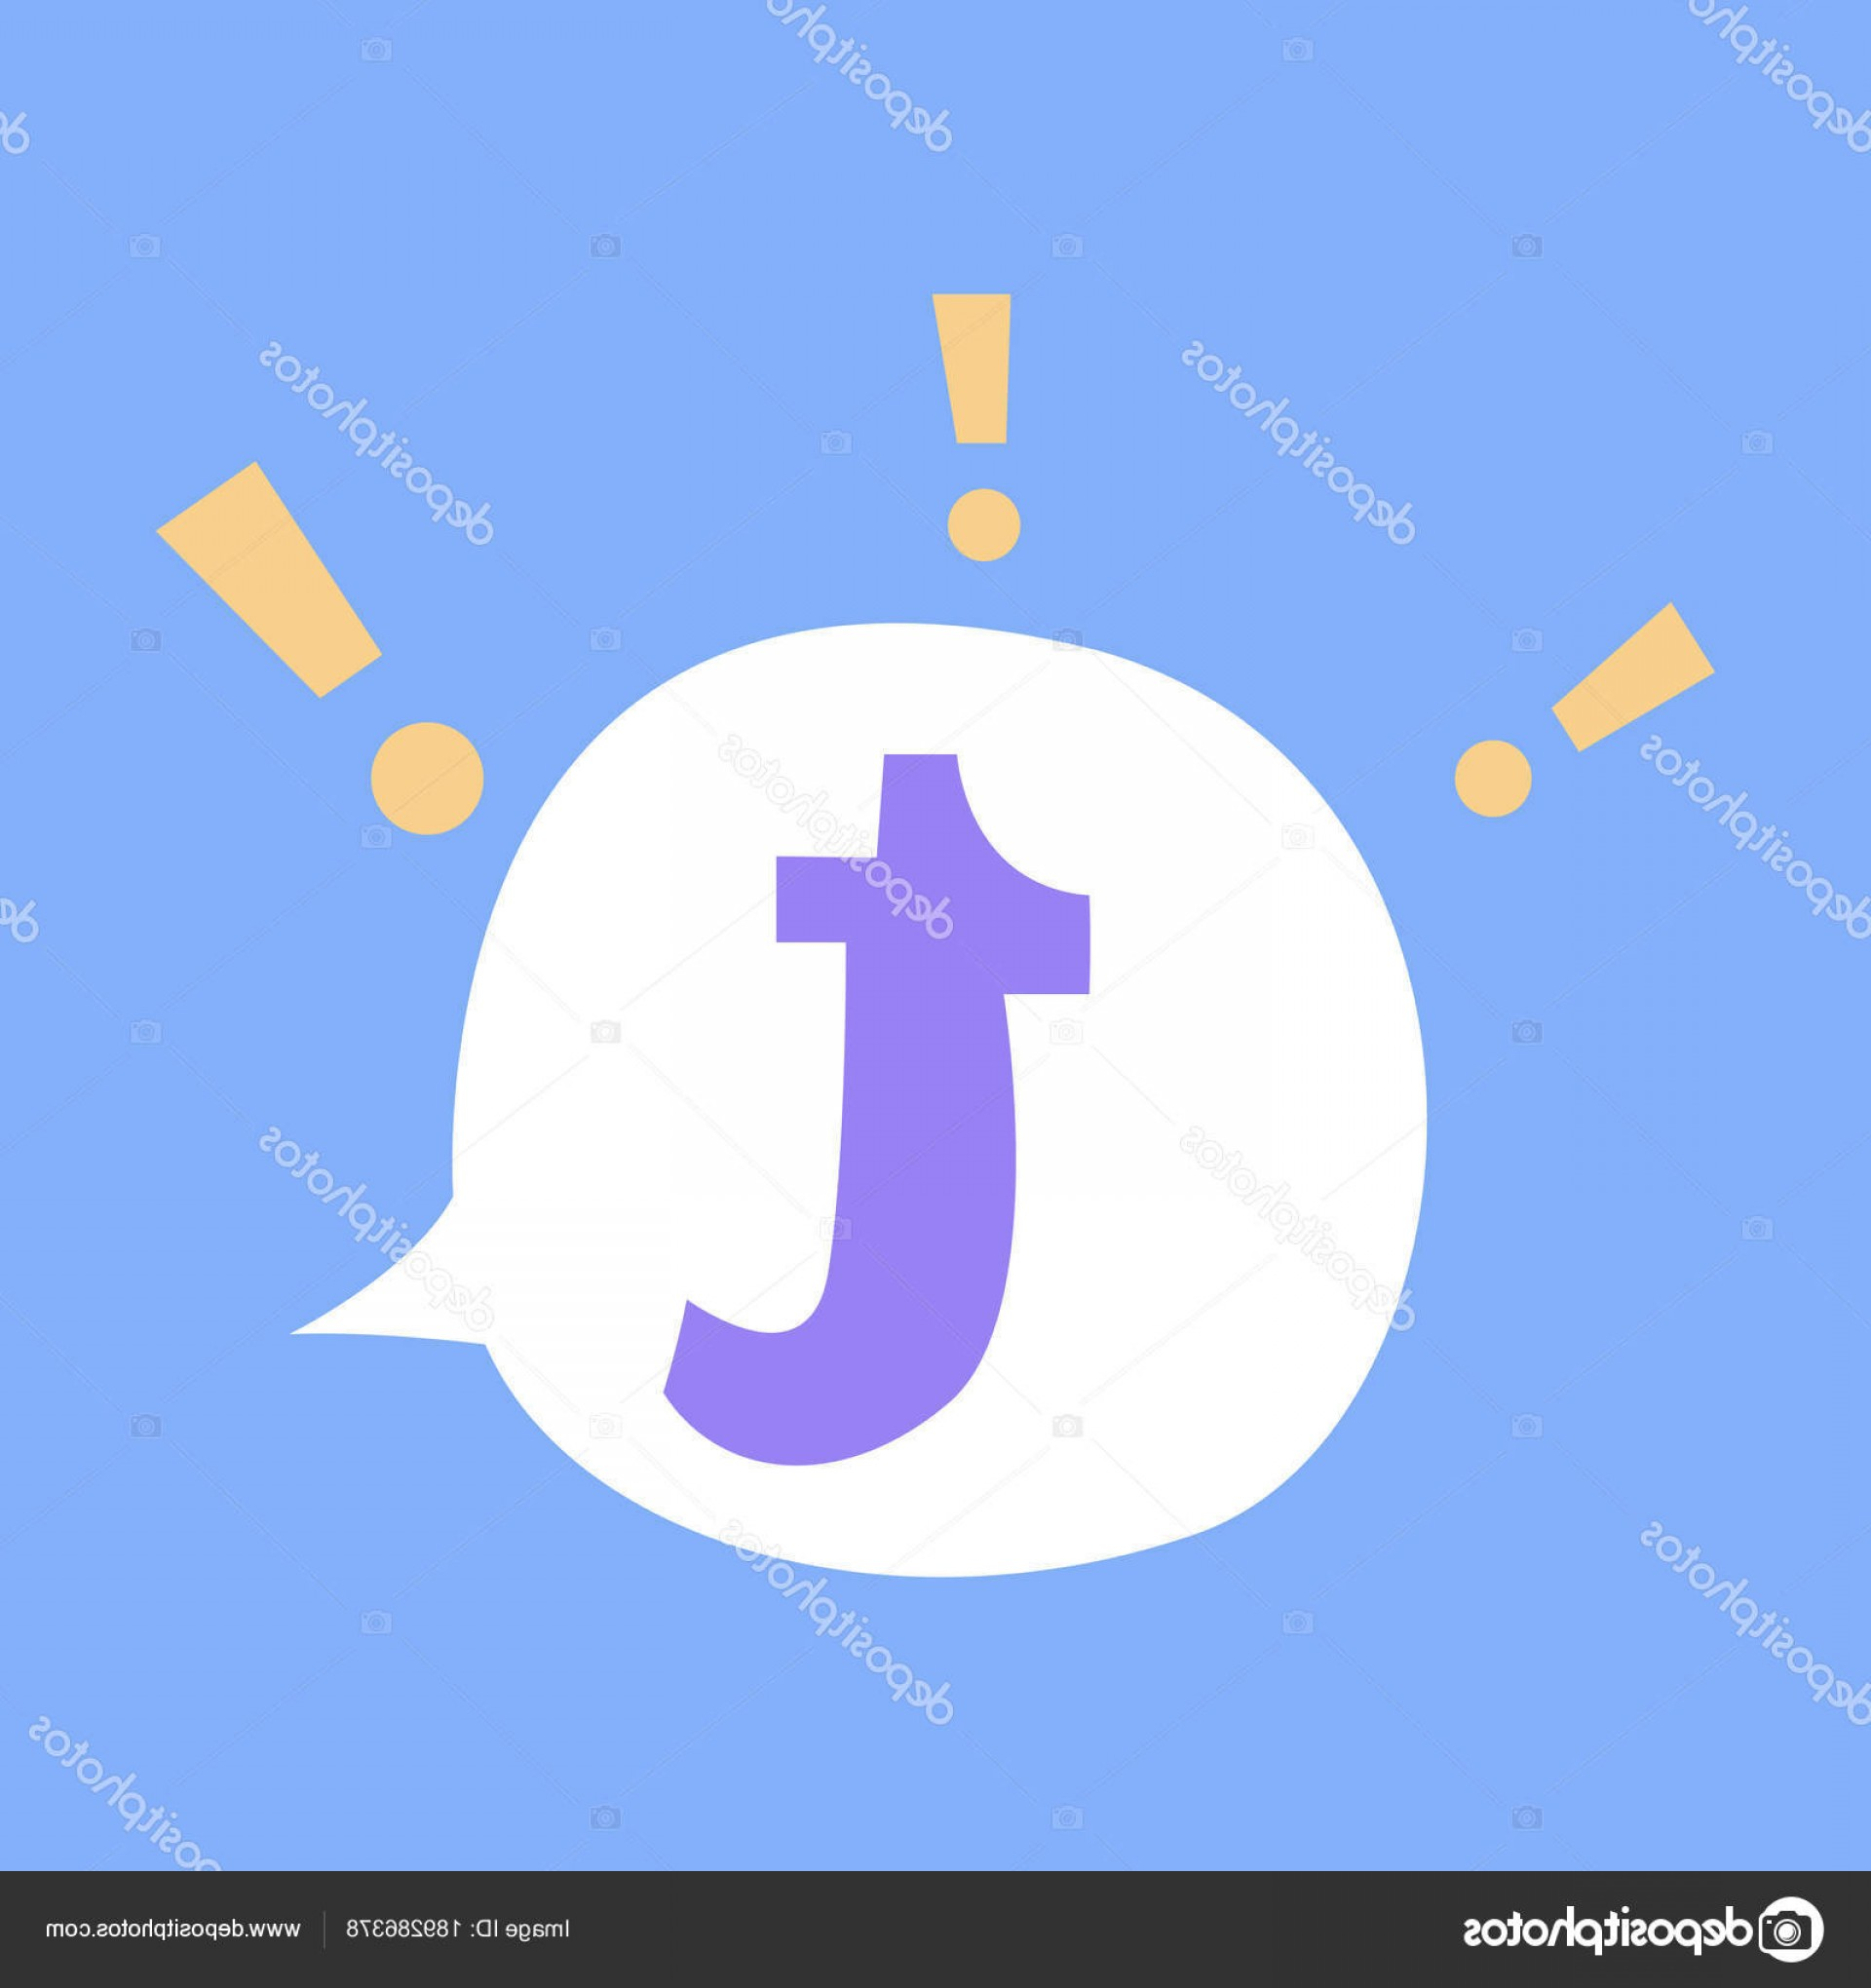 Tumblr Circle Icon Vector: Stock Illustration Flat Tumblr Social Media Icons